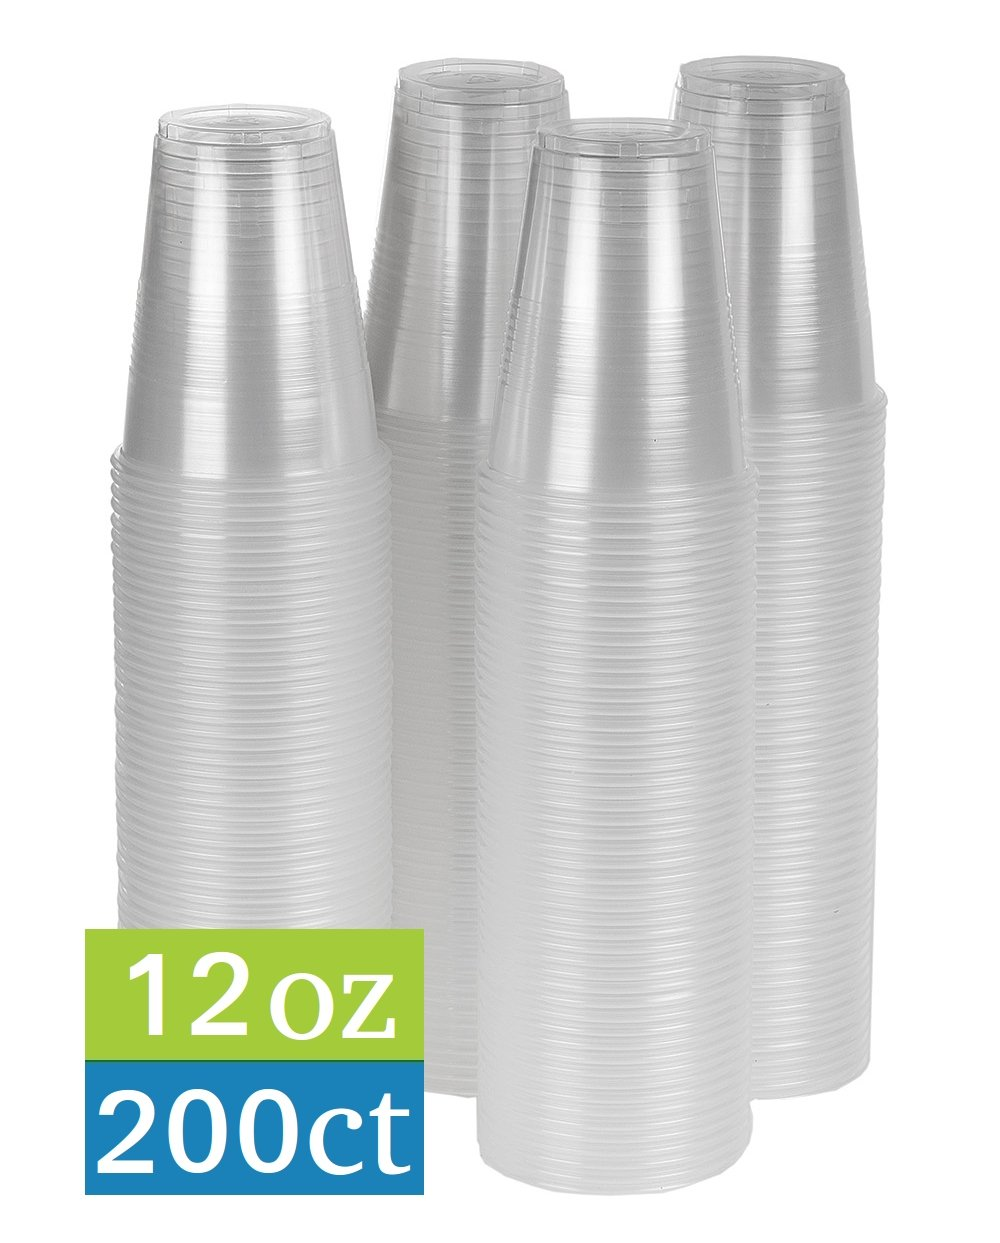 TashiBox 12 oz clear plastic cups - 200 count - Disposable cold drink party cups